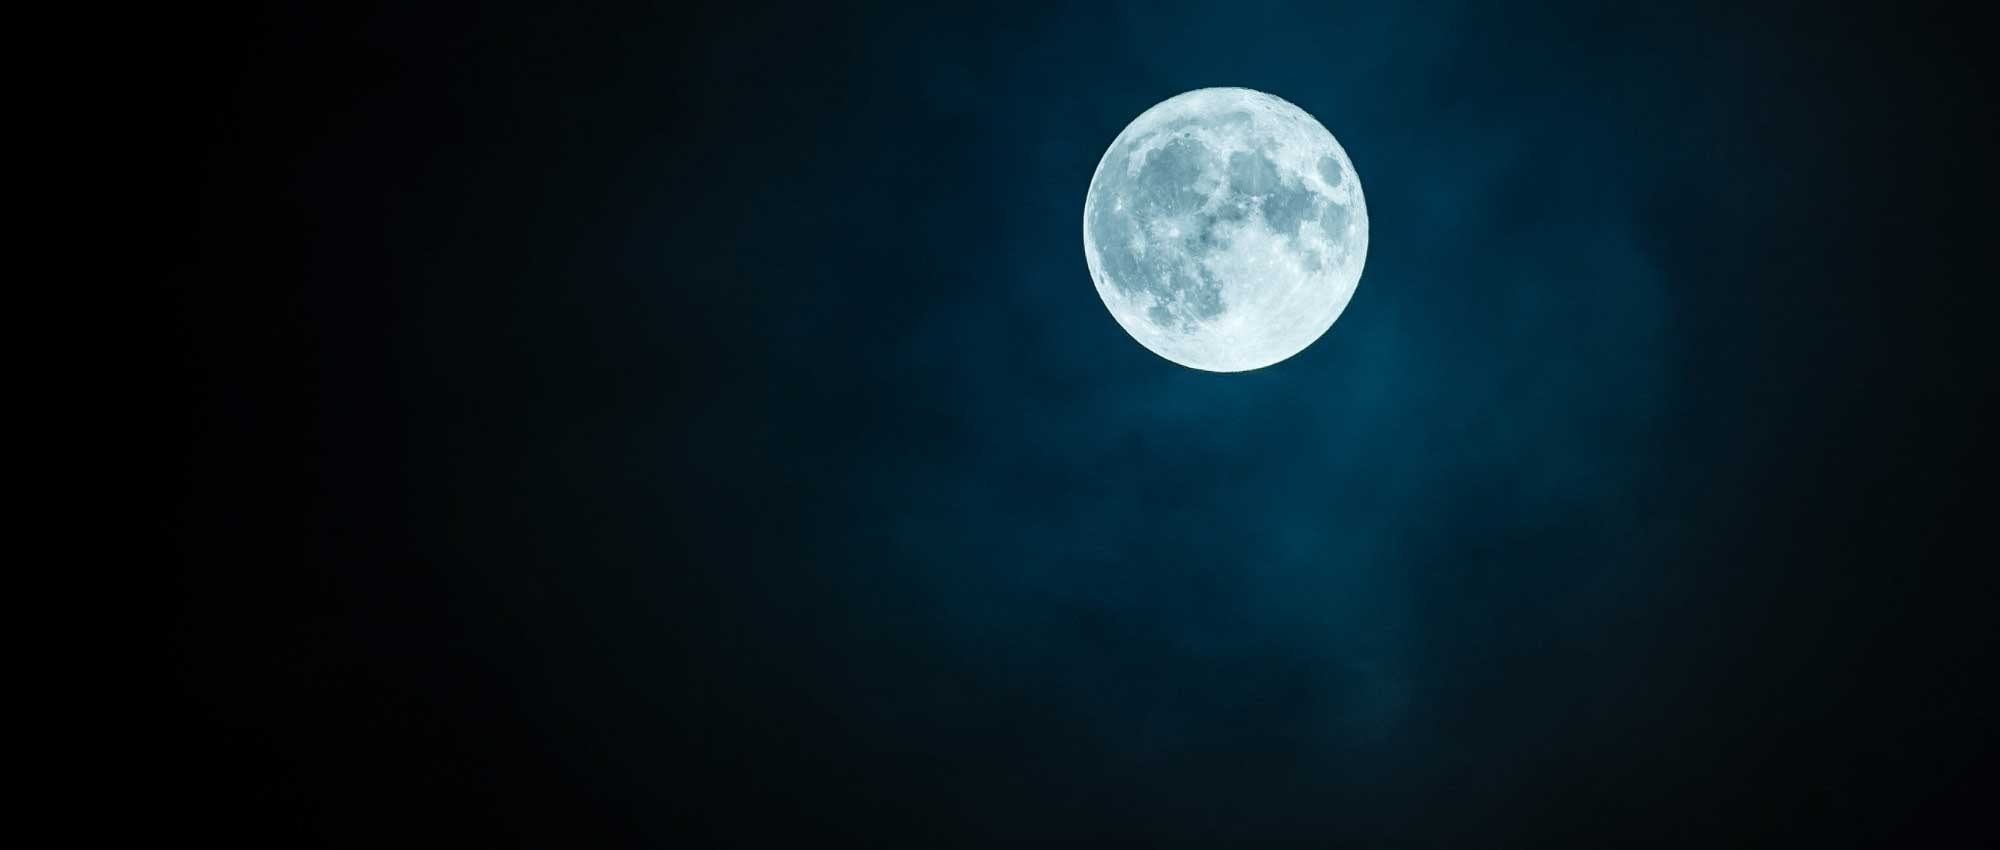 A bright full moon in an inky blue sky